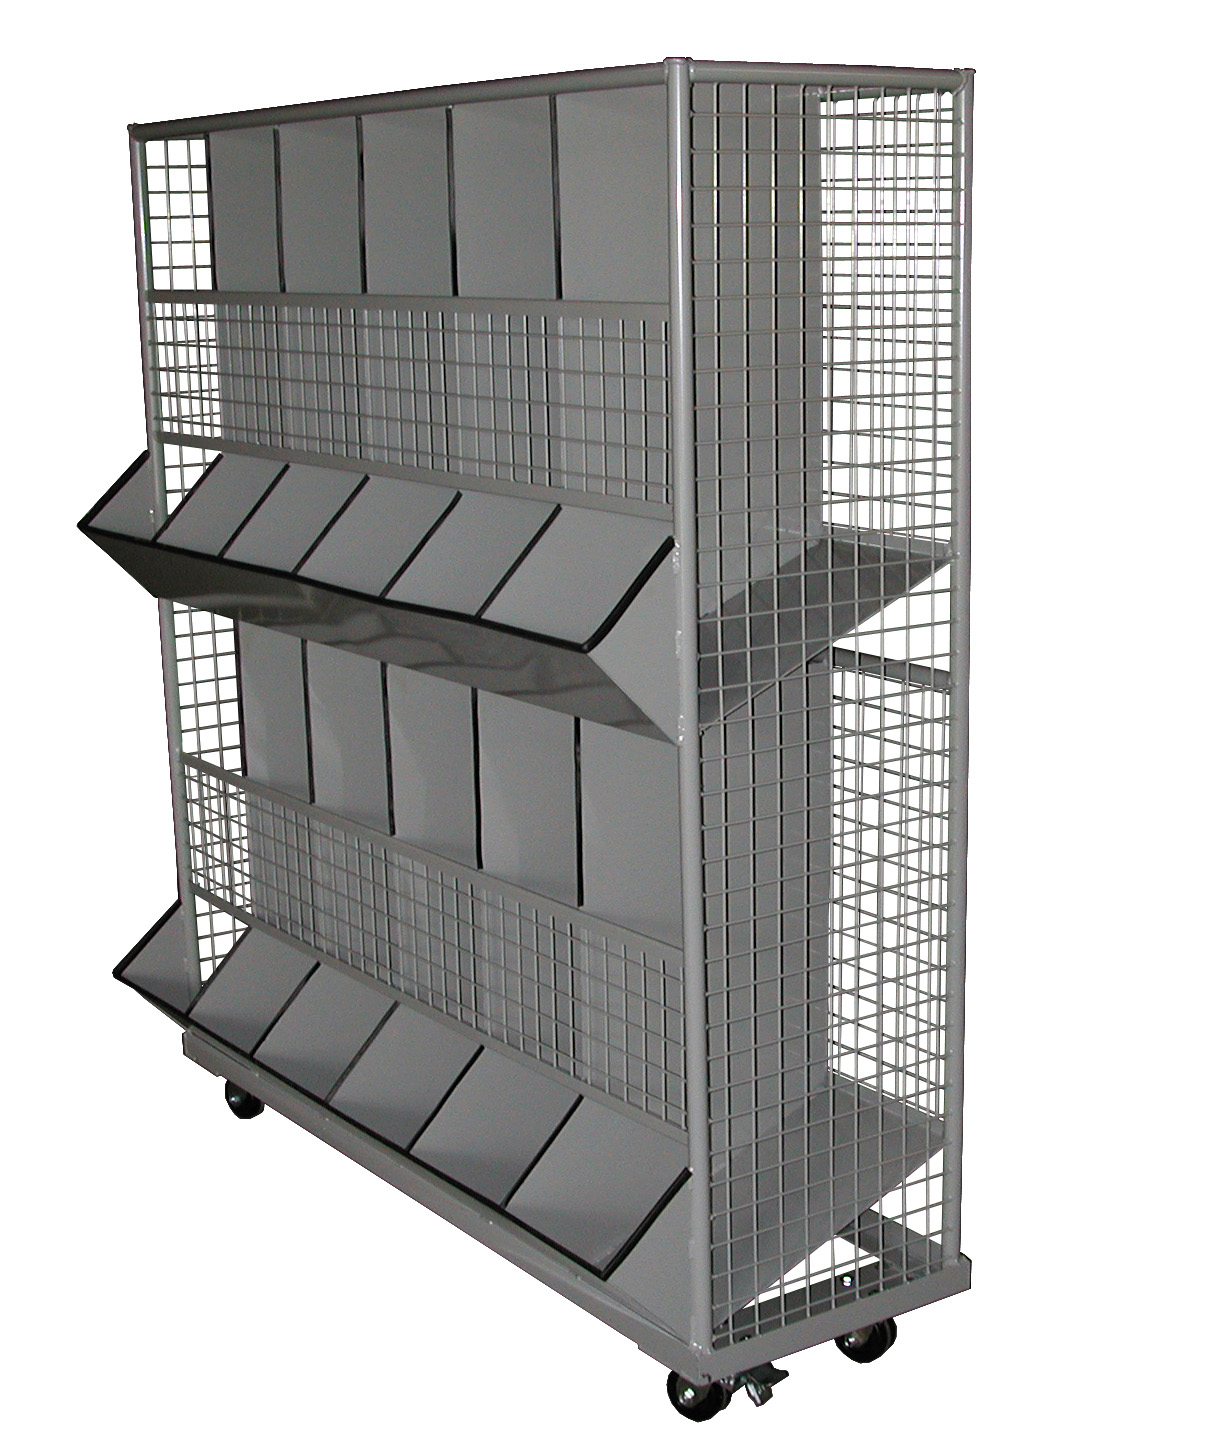 10 Section Utility Bin Cart – 2 Shelves – George O'day's Inc